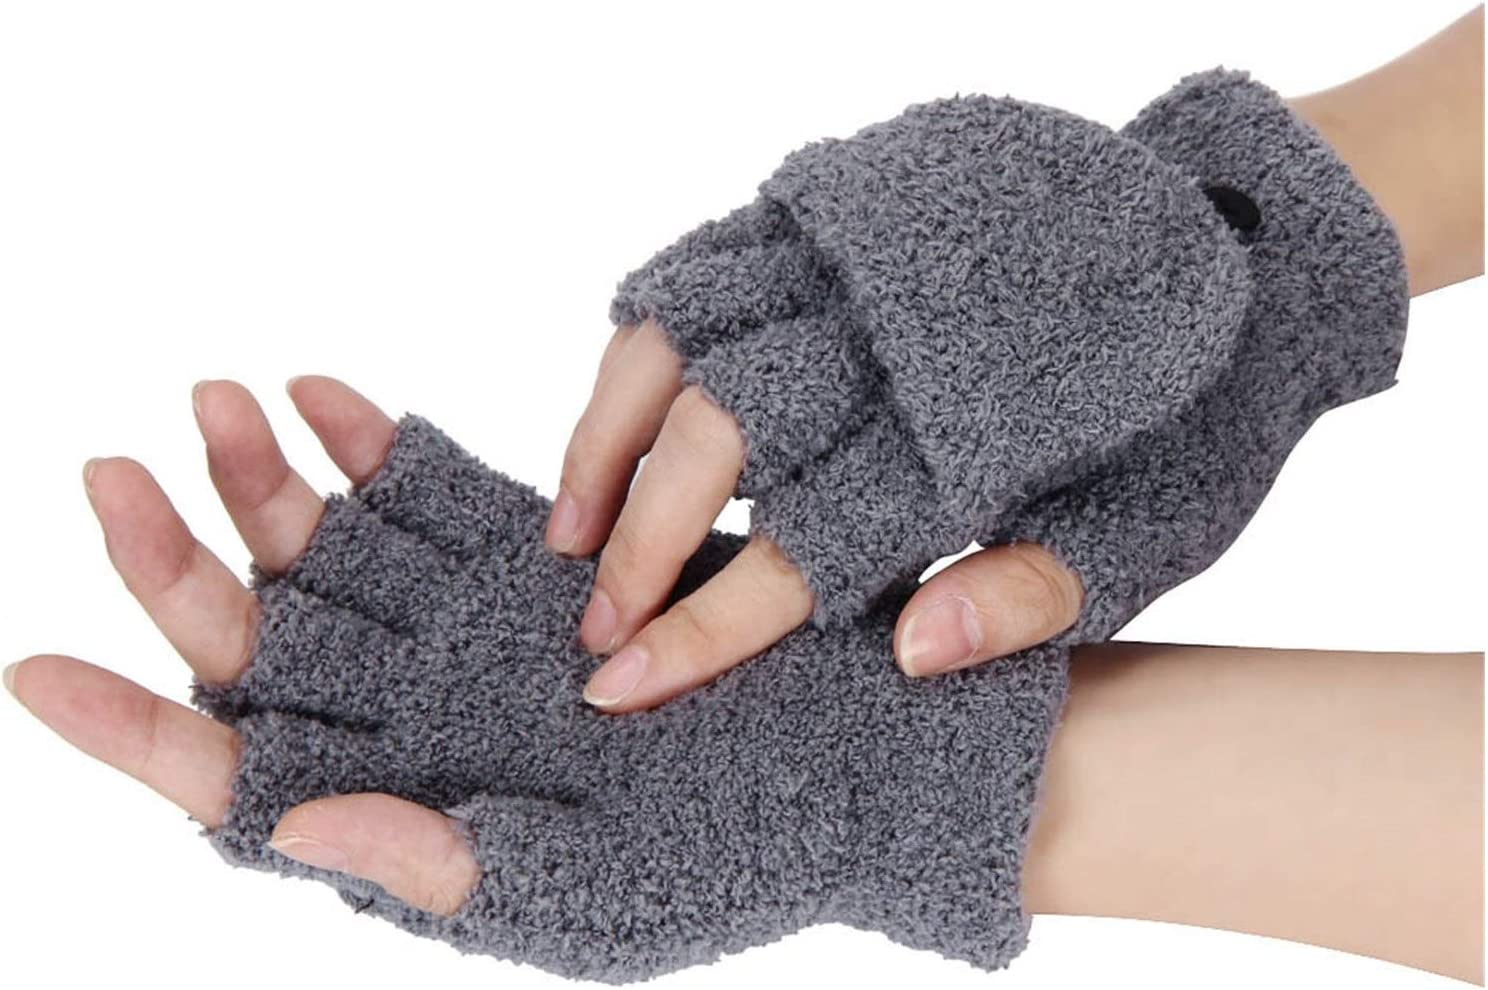 ZZTT Autumn and Winter Gloves Fashion Winter Gloves Women Girls Wrist Strong Winter Ladies Fingerless Gloves Mittens Ladies Half Finger Gloves Winter Warm and Comfortable Gloves for Men or Momen